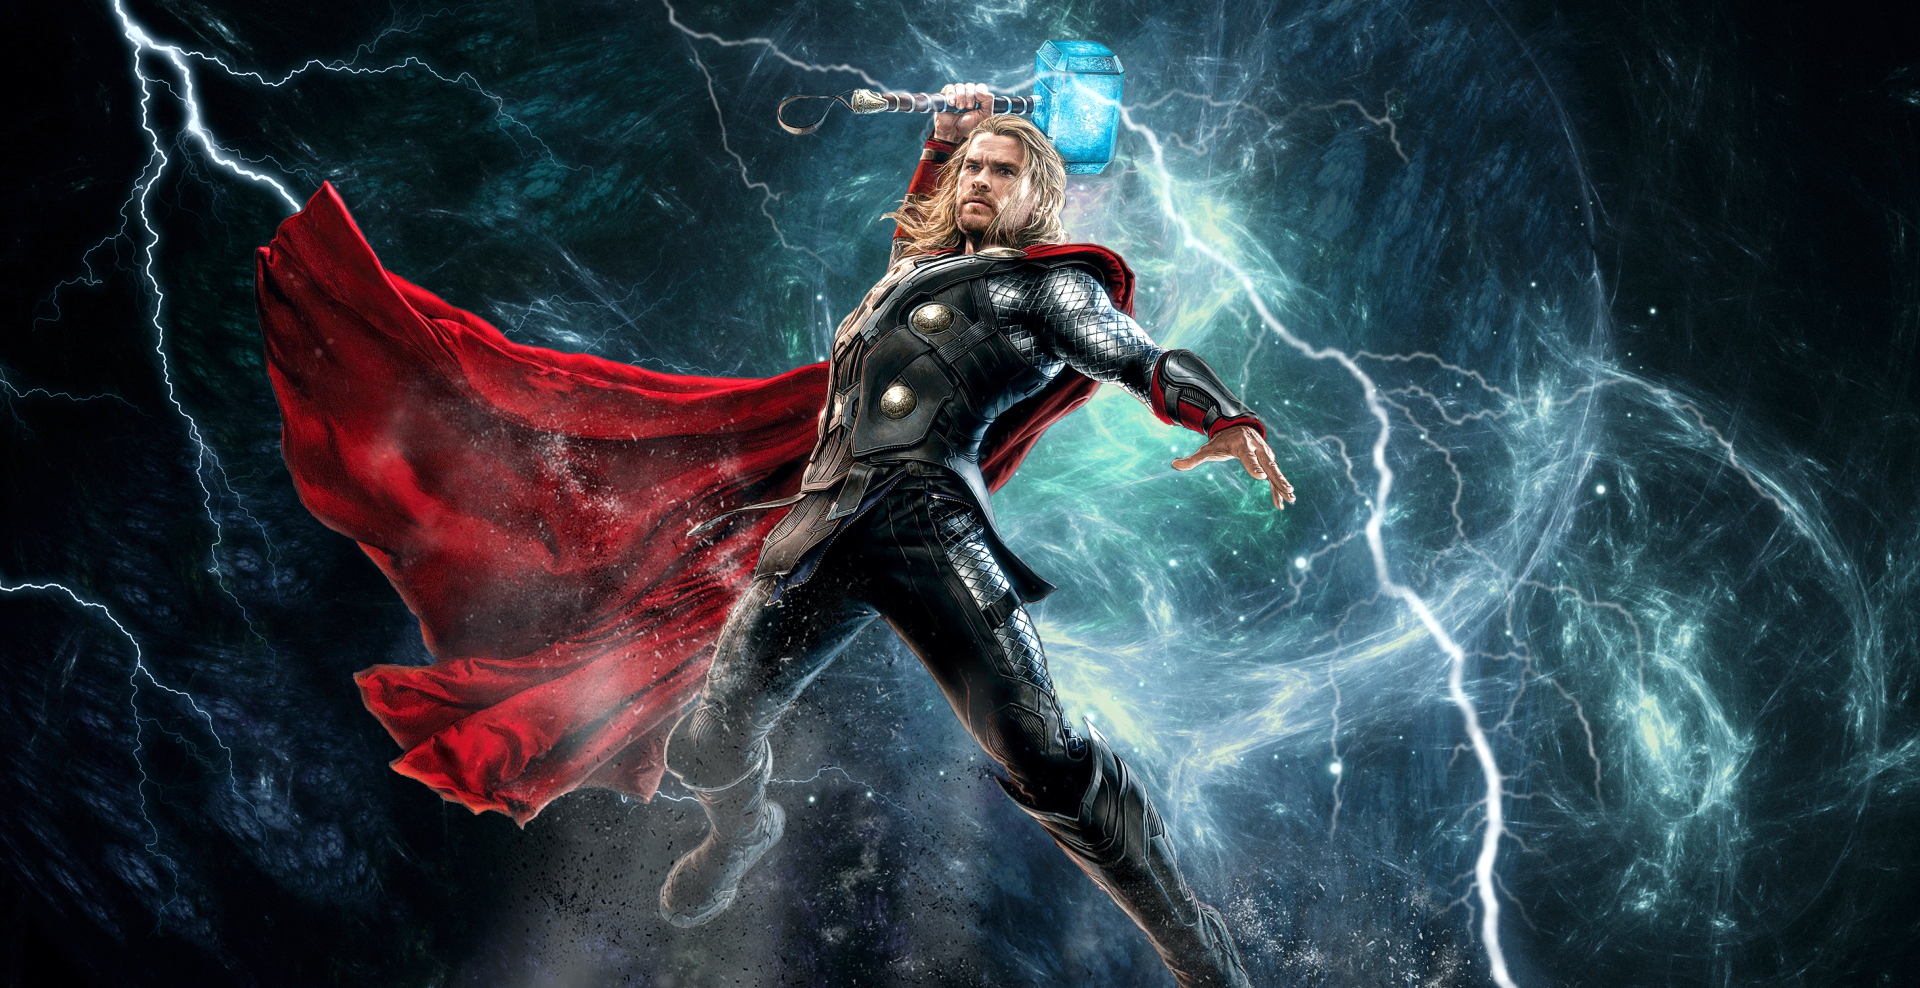 The Answers You Seek Shall Be Yours Once I Claim What S Mine Thor Wallpaper Marvel Comics Wallpaper Avengers Wallpaper